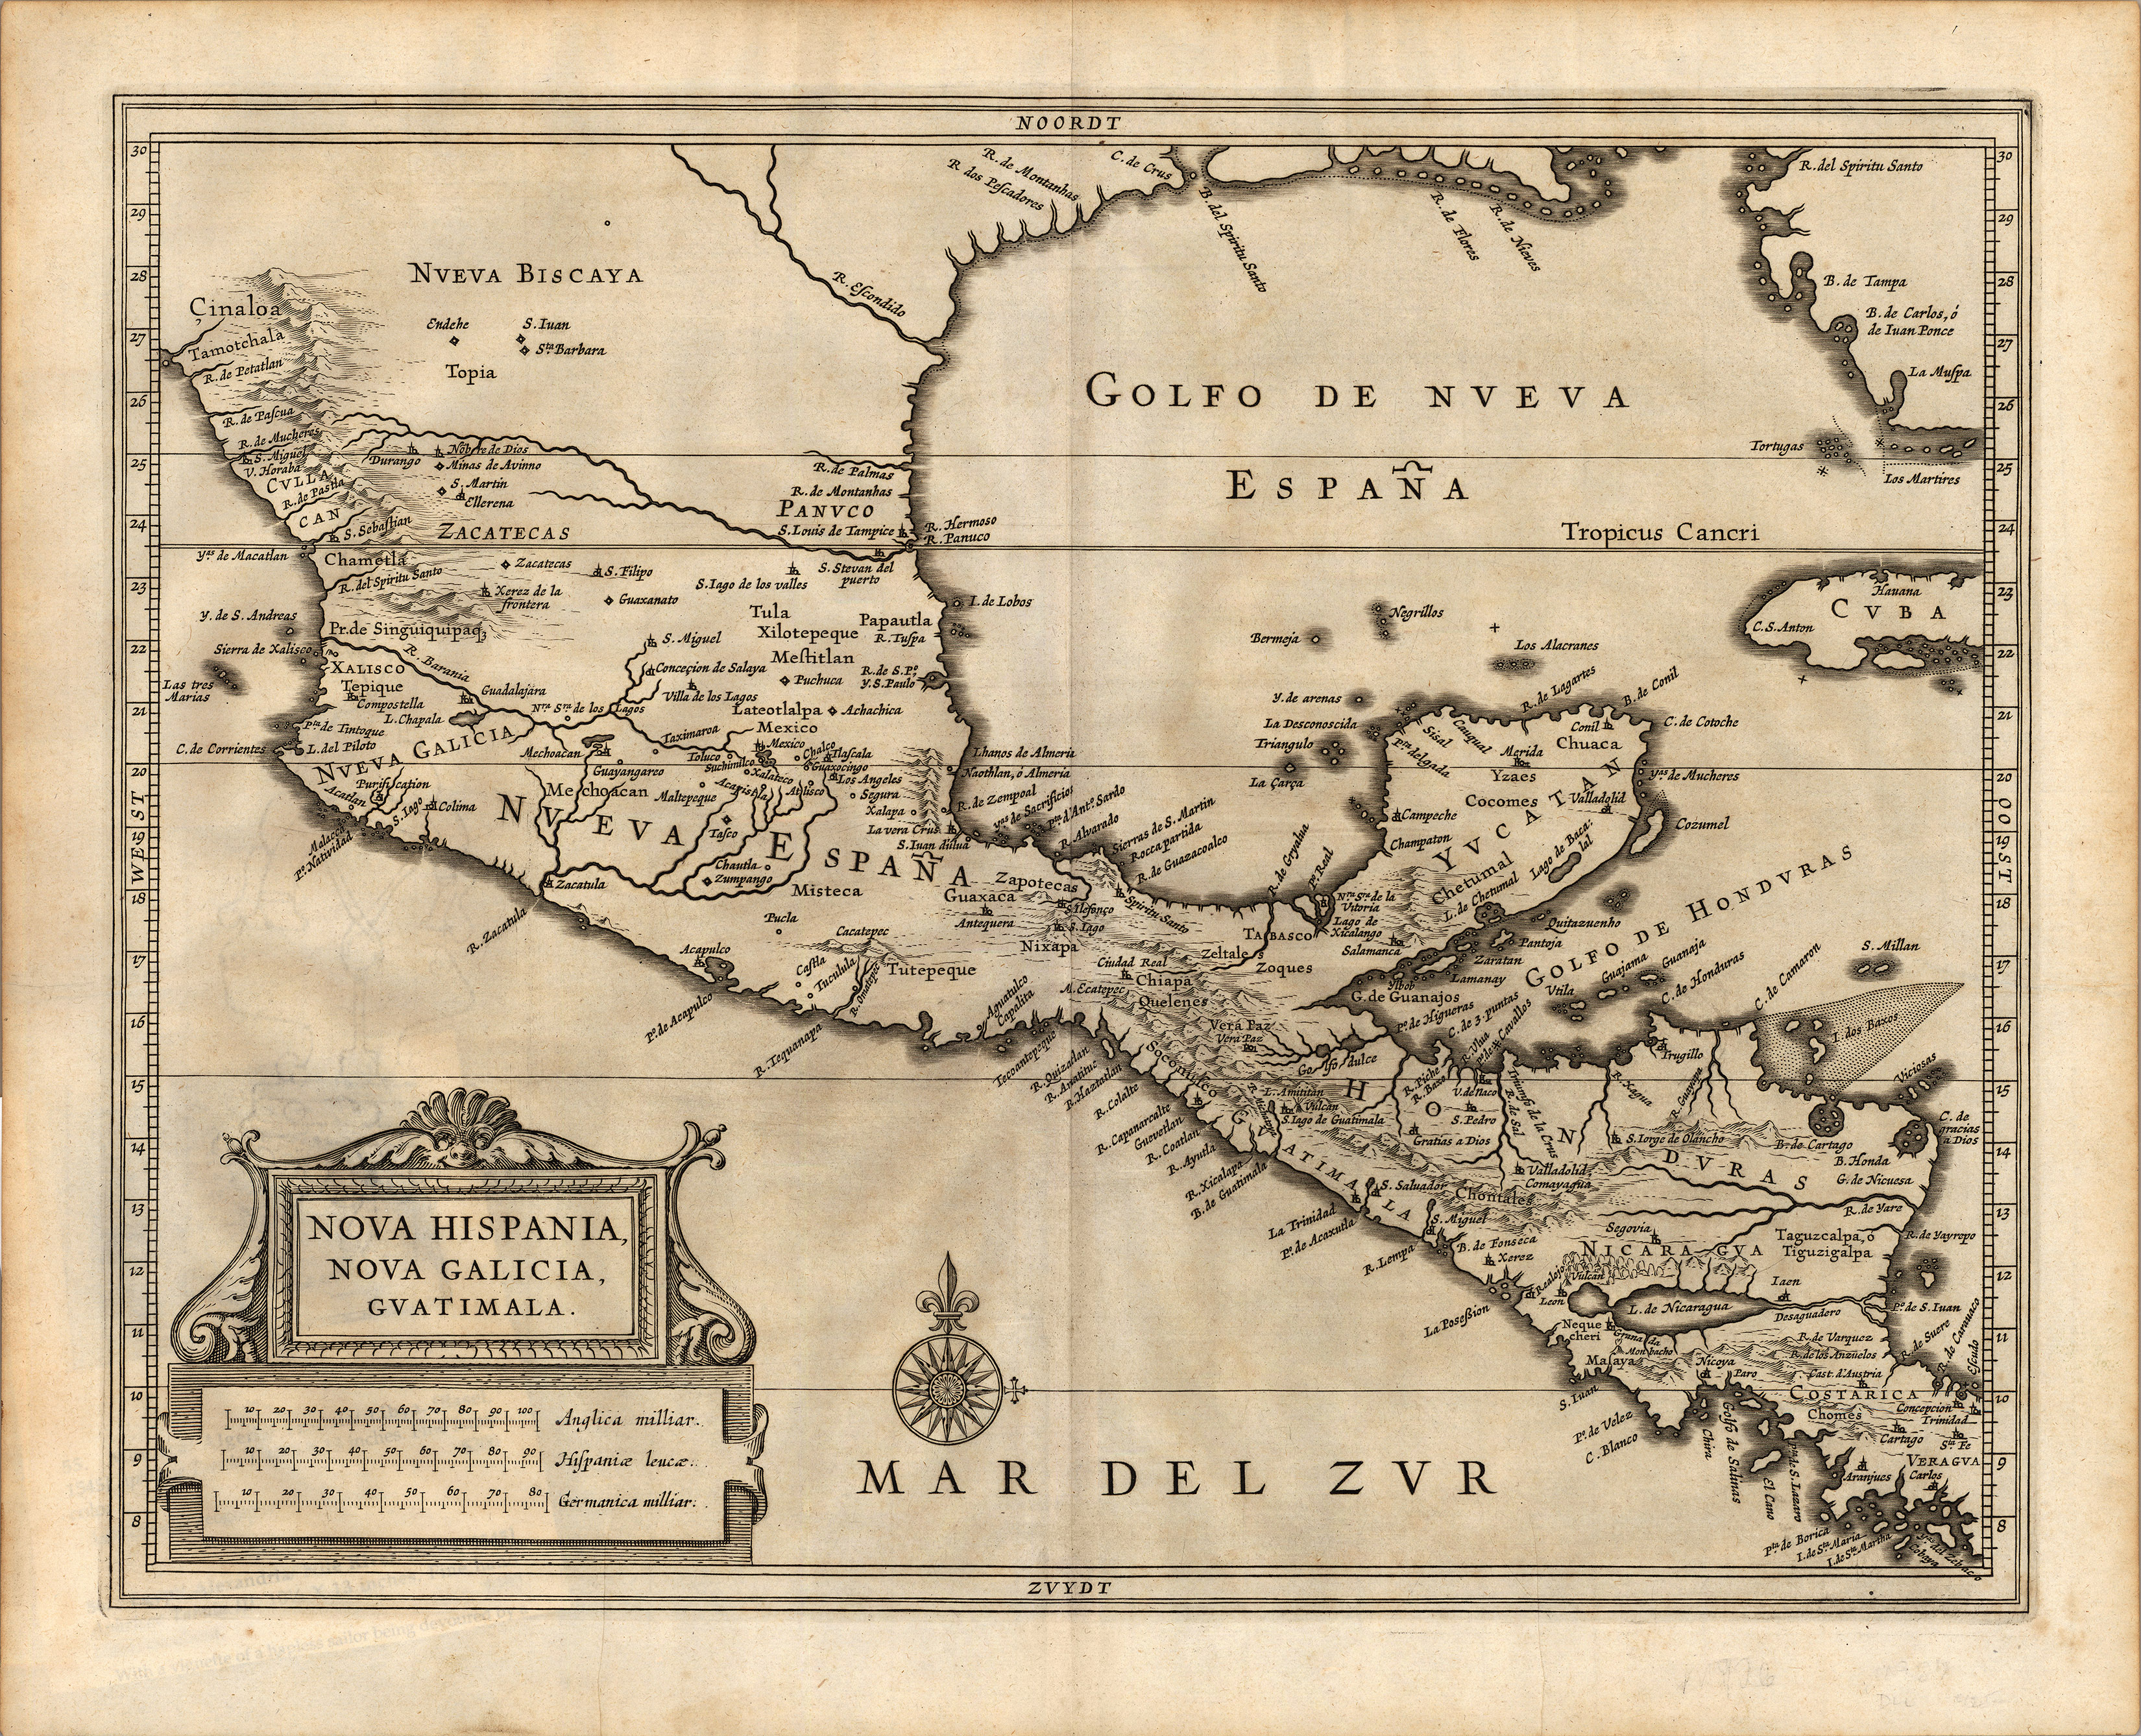 Nova hispania nova galicia guatimala yana marty davis map this map was published by dutch cartographer joannes de laet 1581 1649 in his history of the new world atlas in 1640 and it became a foundation map for gumiabroncs Gallery